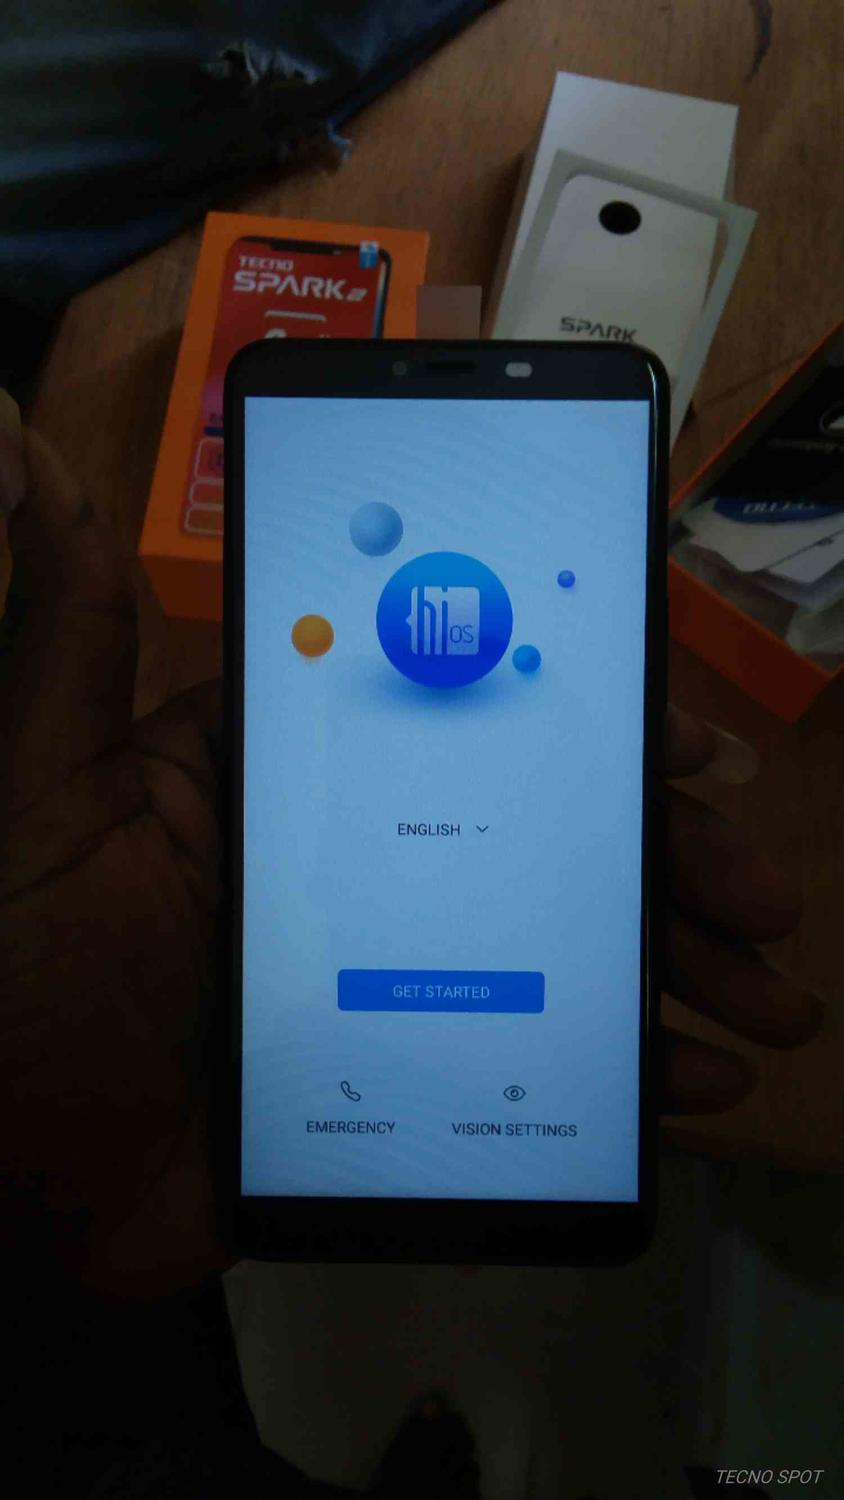 TECNO SPARK 2 UNBOXING AND FIRST IMPRESSION  - TECNO MOBILE